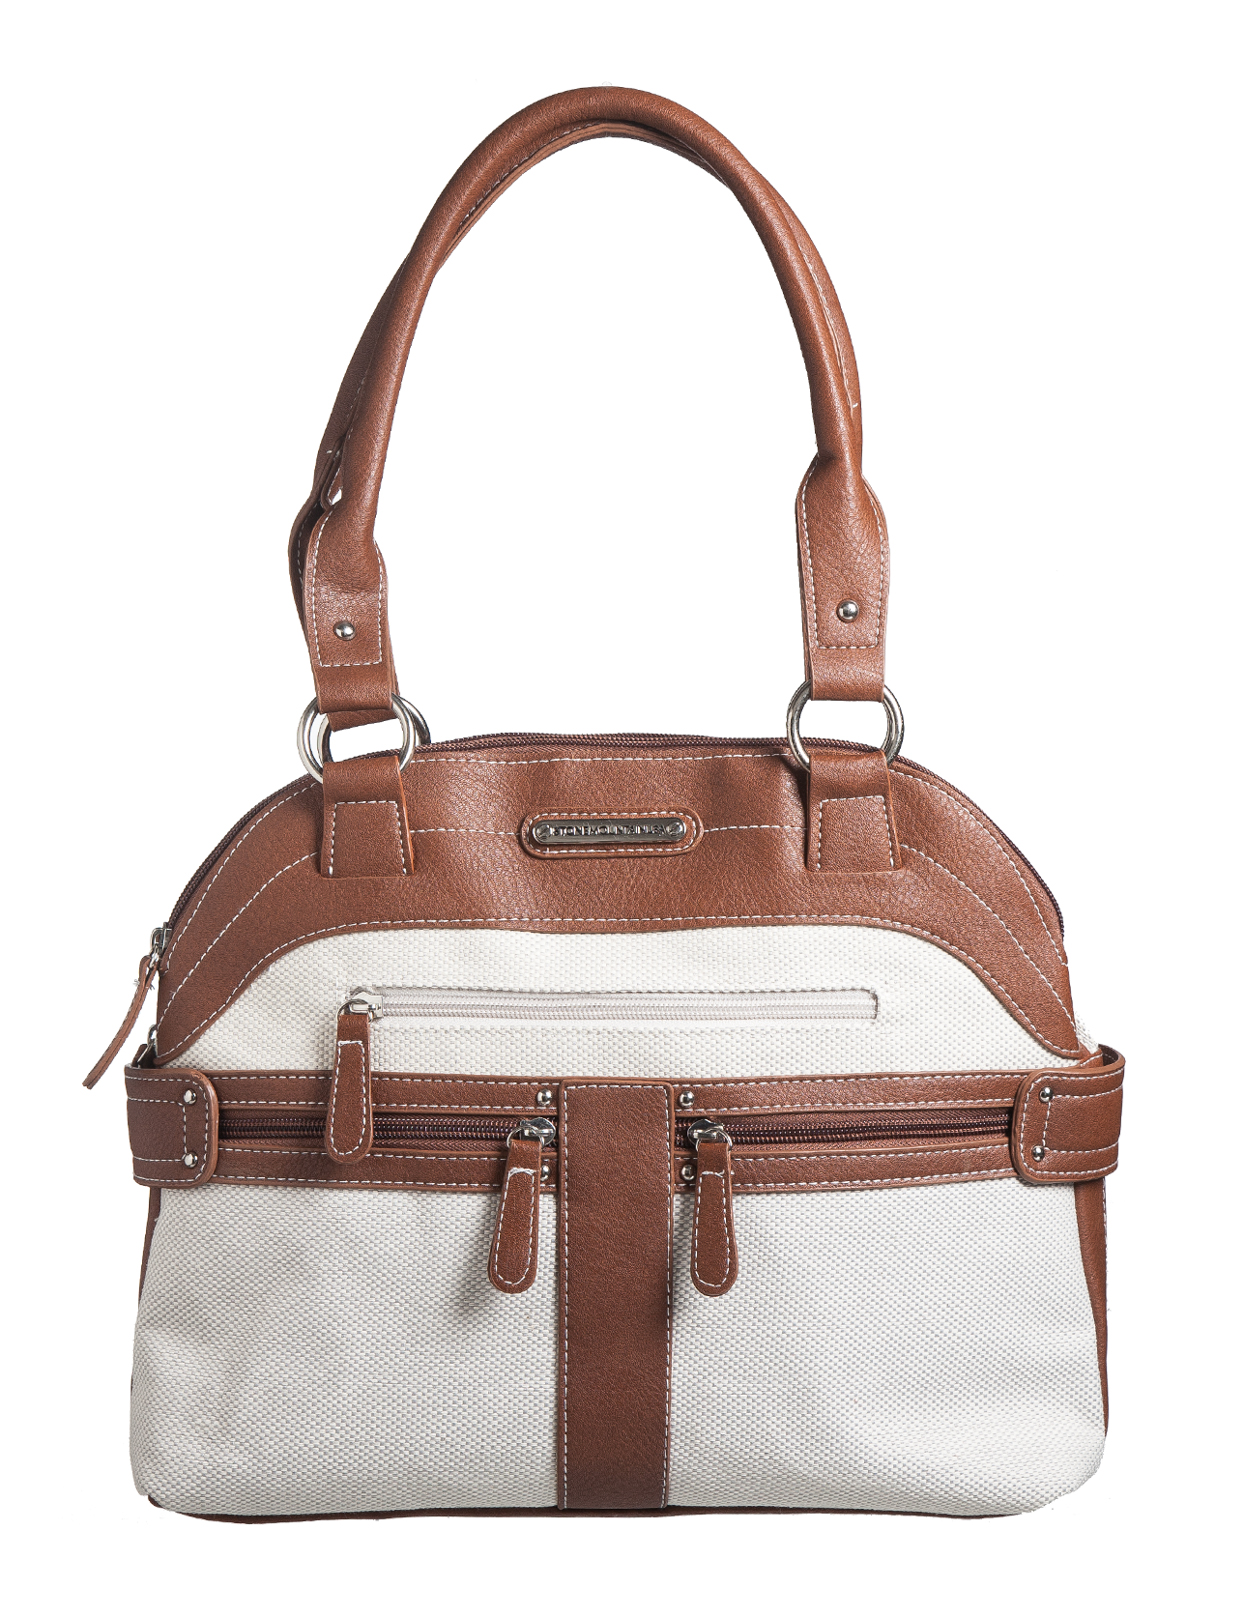 Cohasset Large Dome Satchel